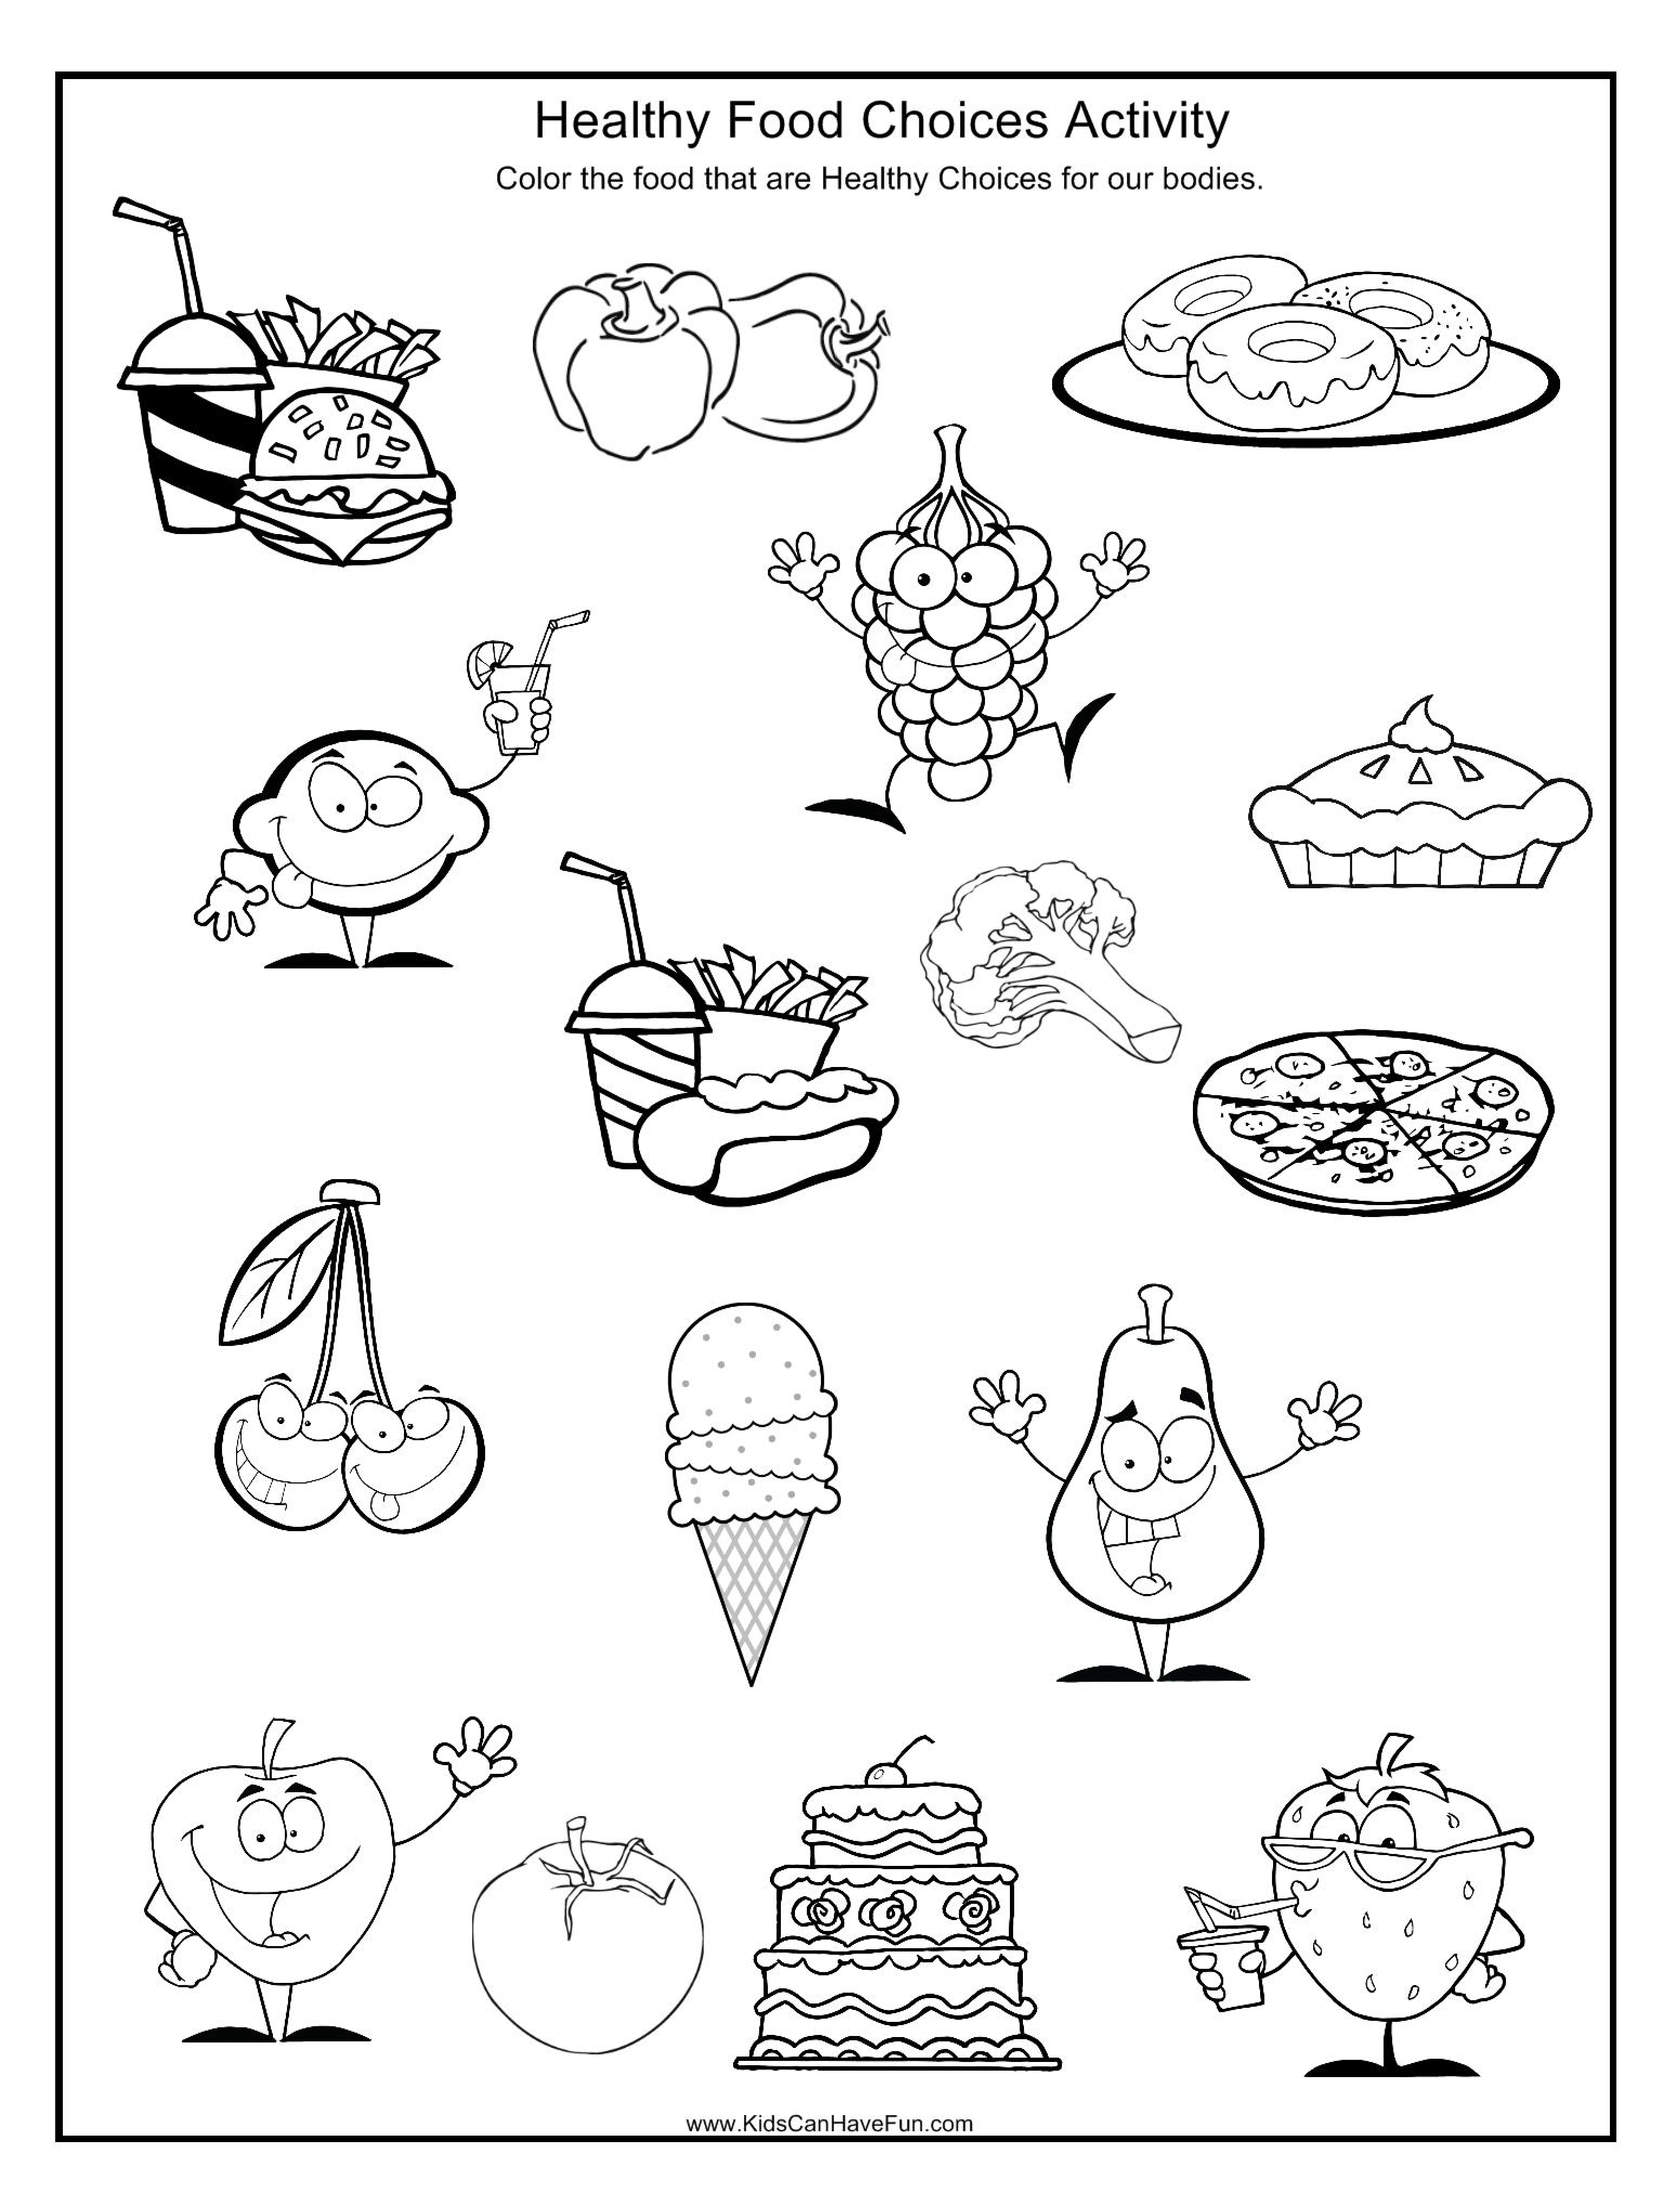 Pindebbie Yoho On Coloring Sheets | Pinterest | Healthy And - Free Printable Healthy Eating Worksheets